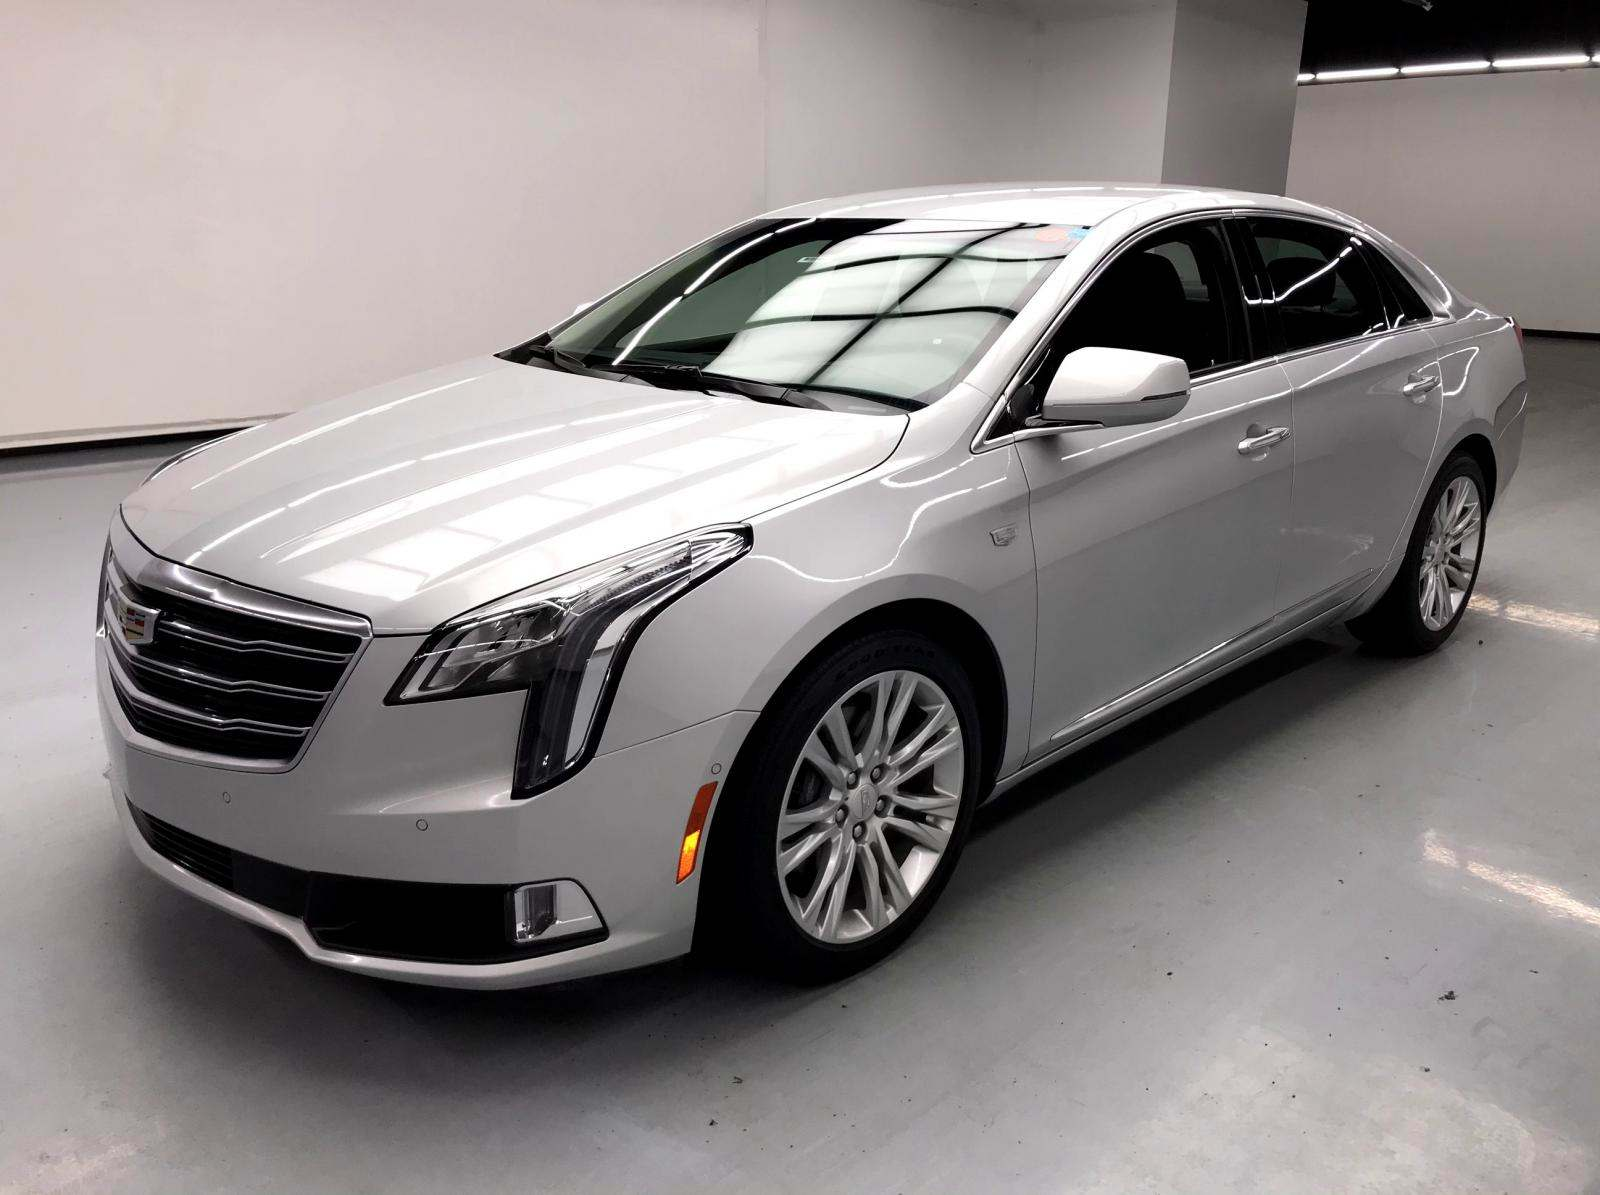 Xts For Sale >> Used 2019 Cadillac Xts For Sale 28 400 Vroom